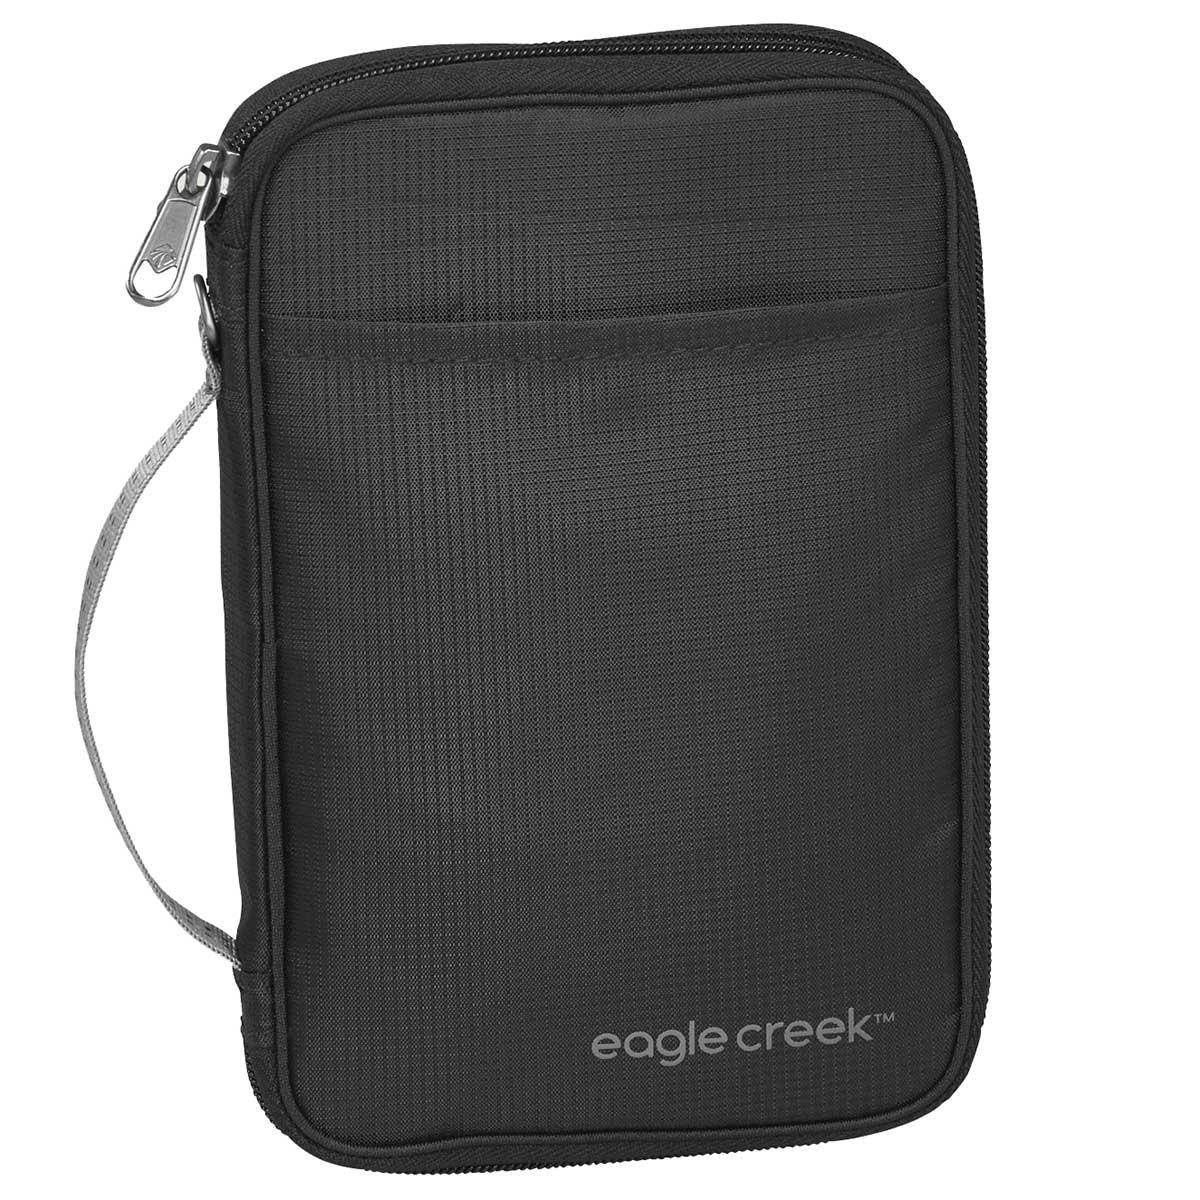 Eagle Creek RFID Travel Zip Organizer in Black